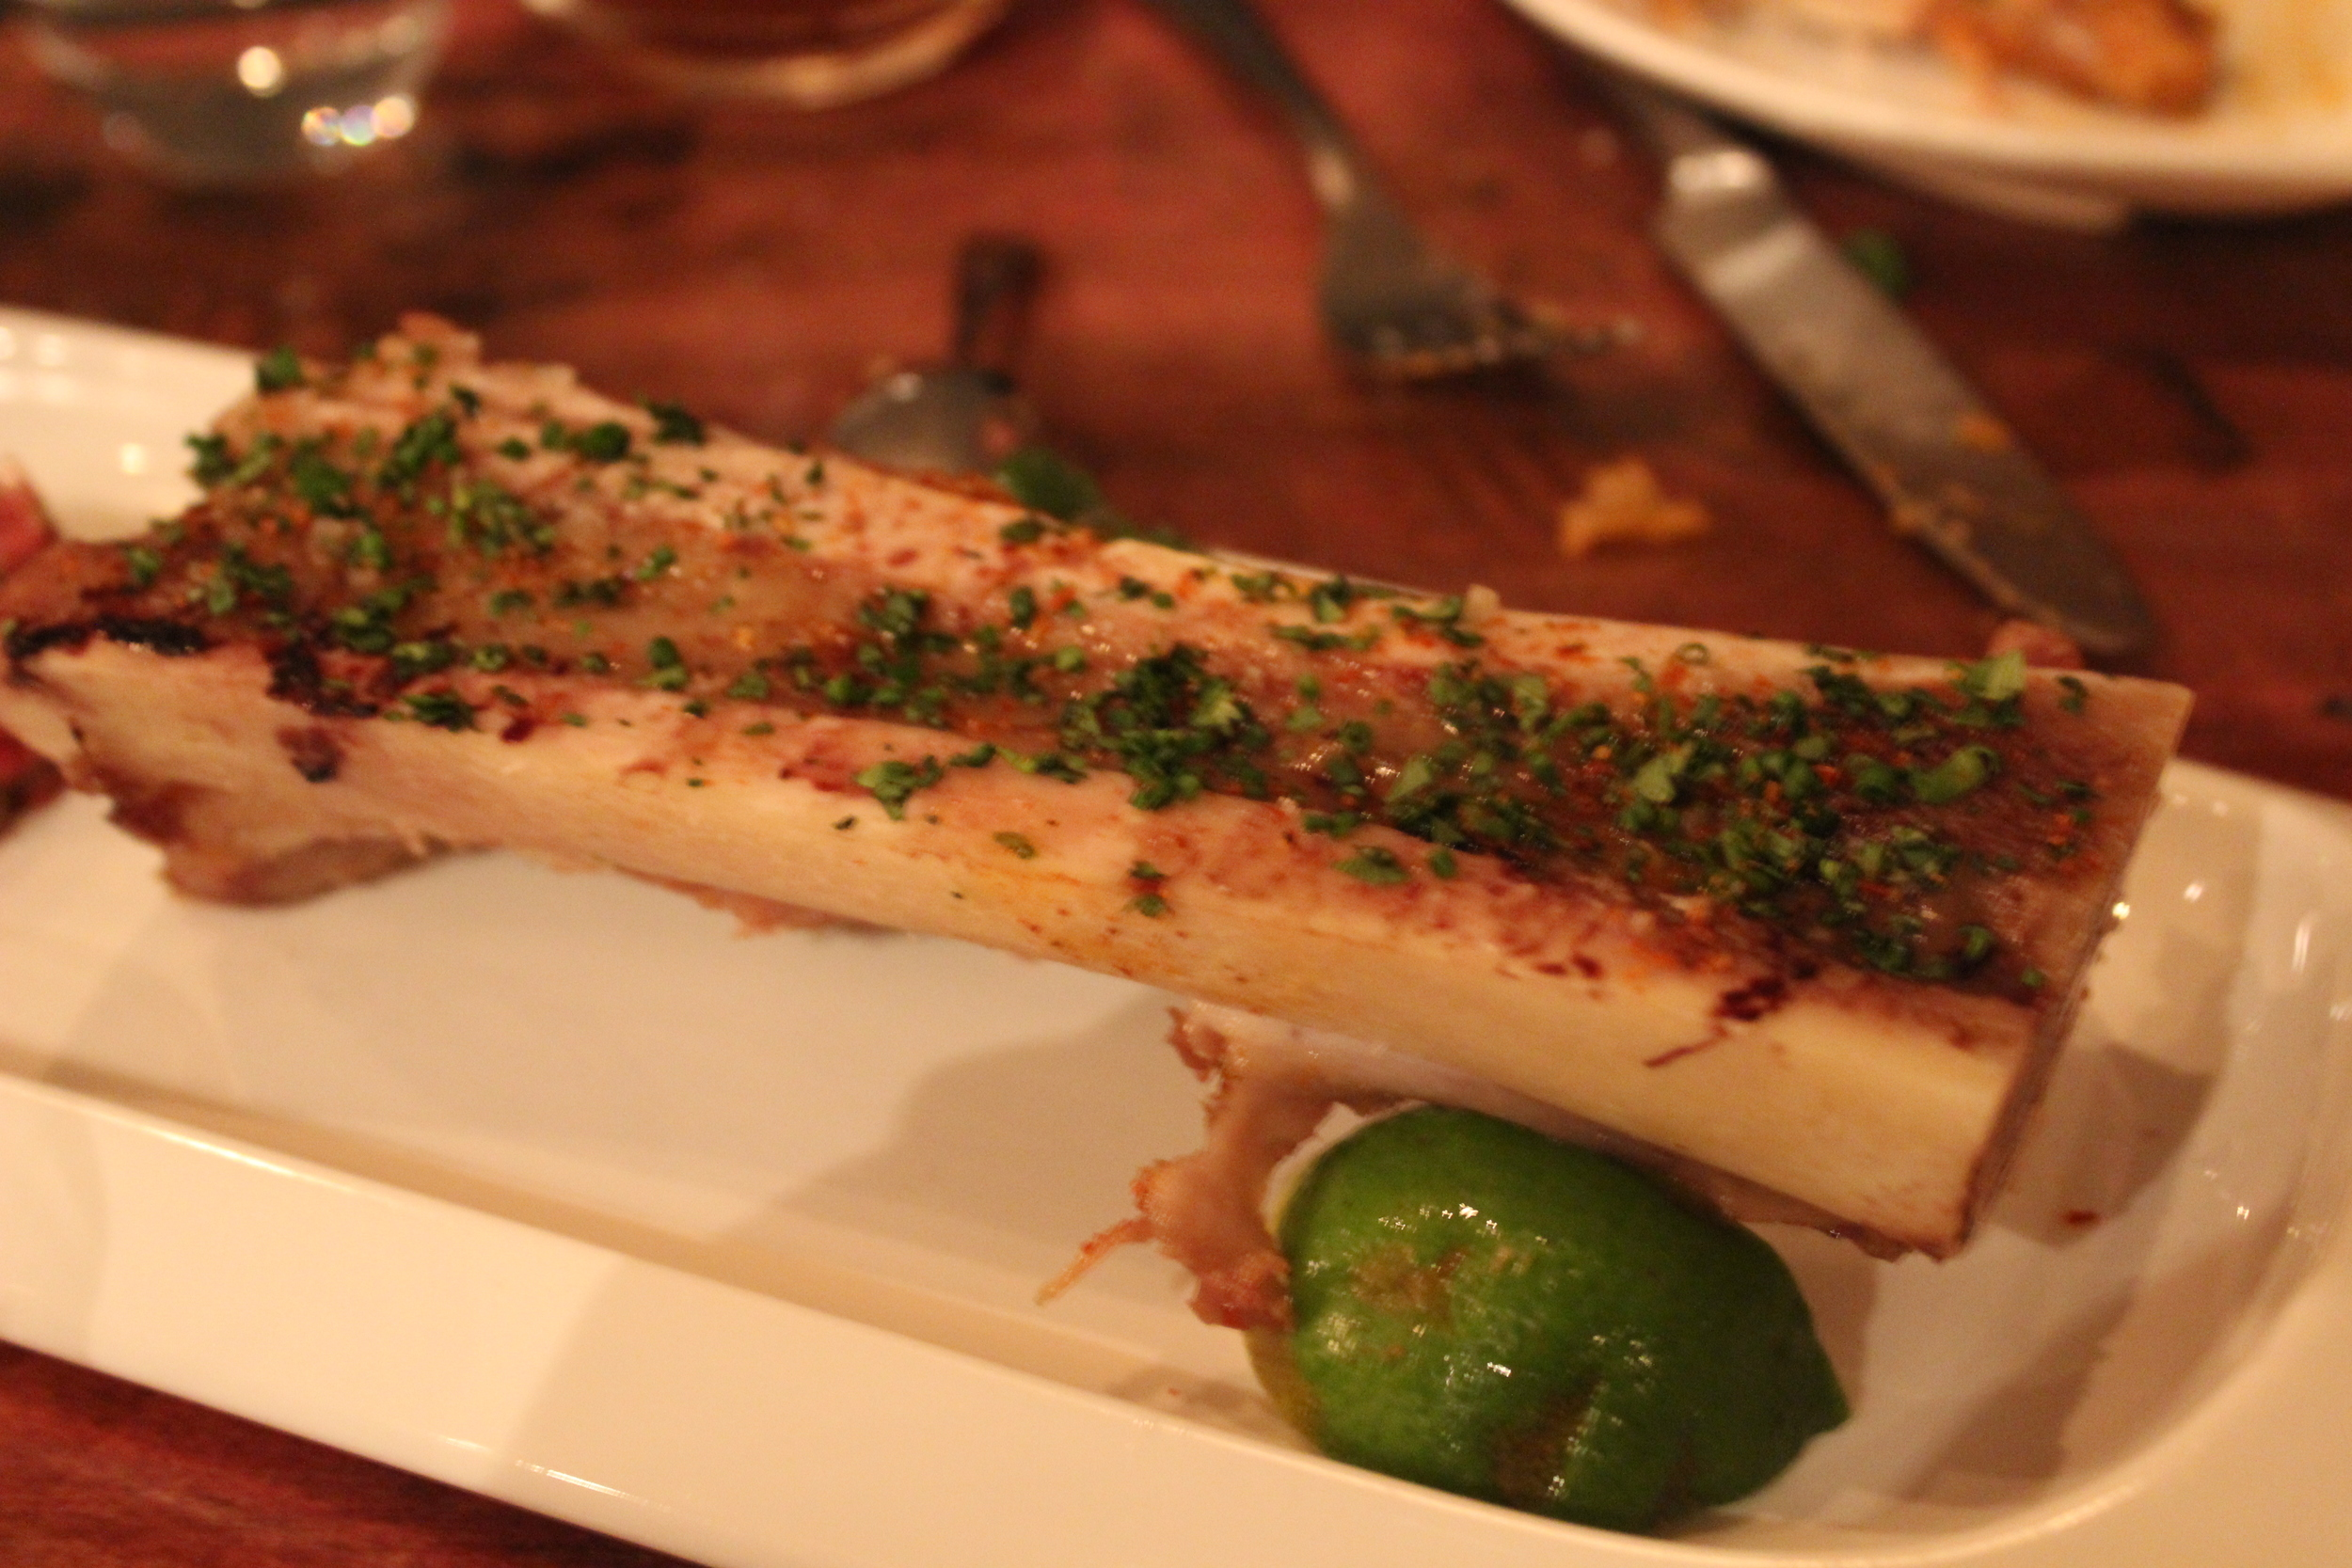 Course 8: Roasted Bone Marrow with Steak Tartare